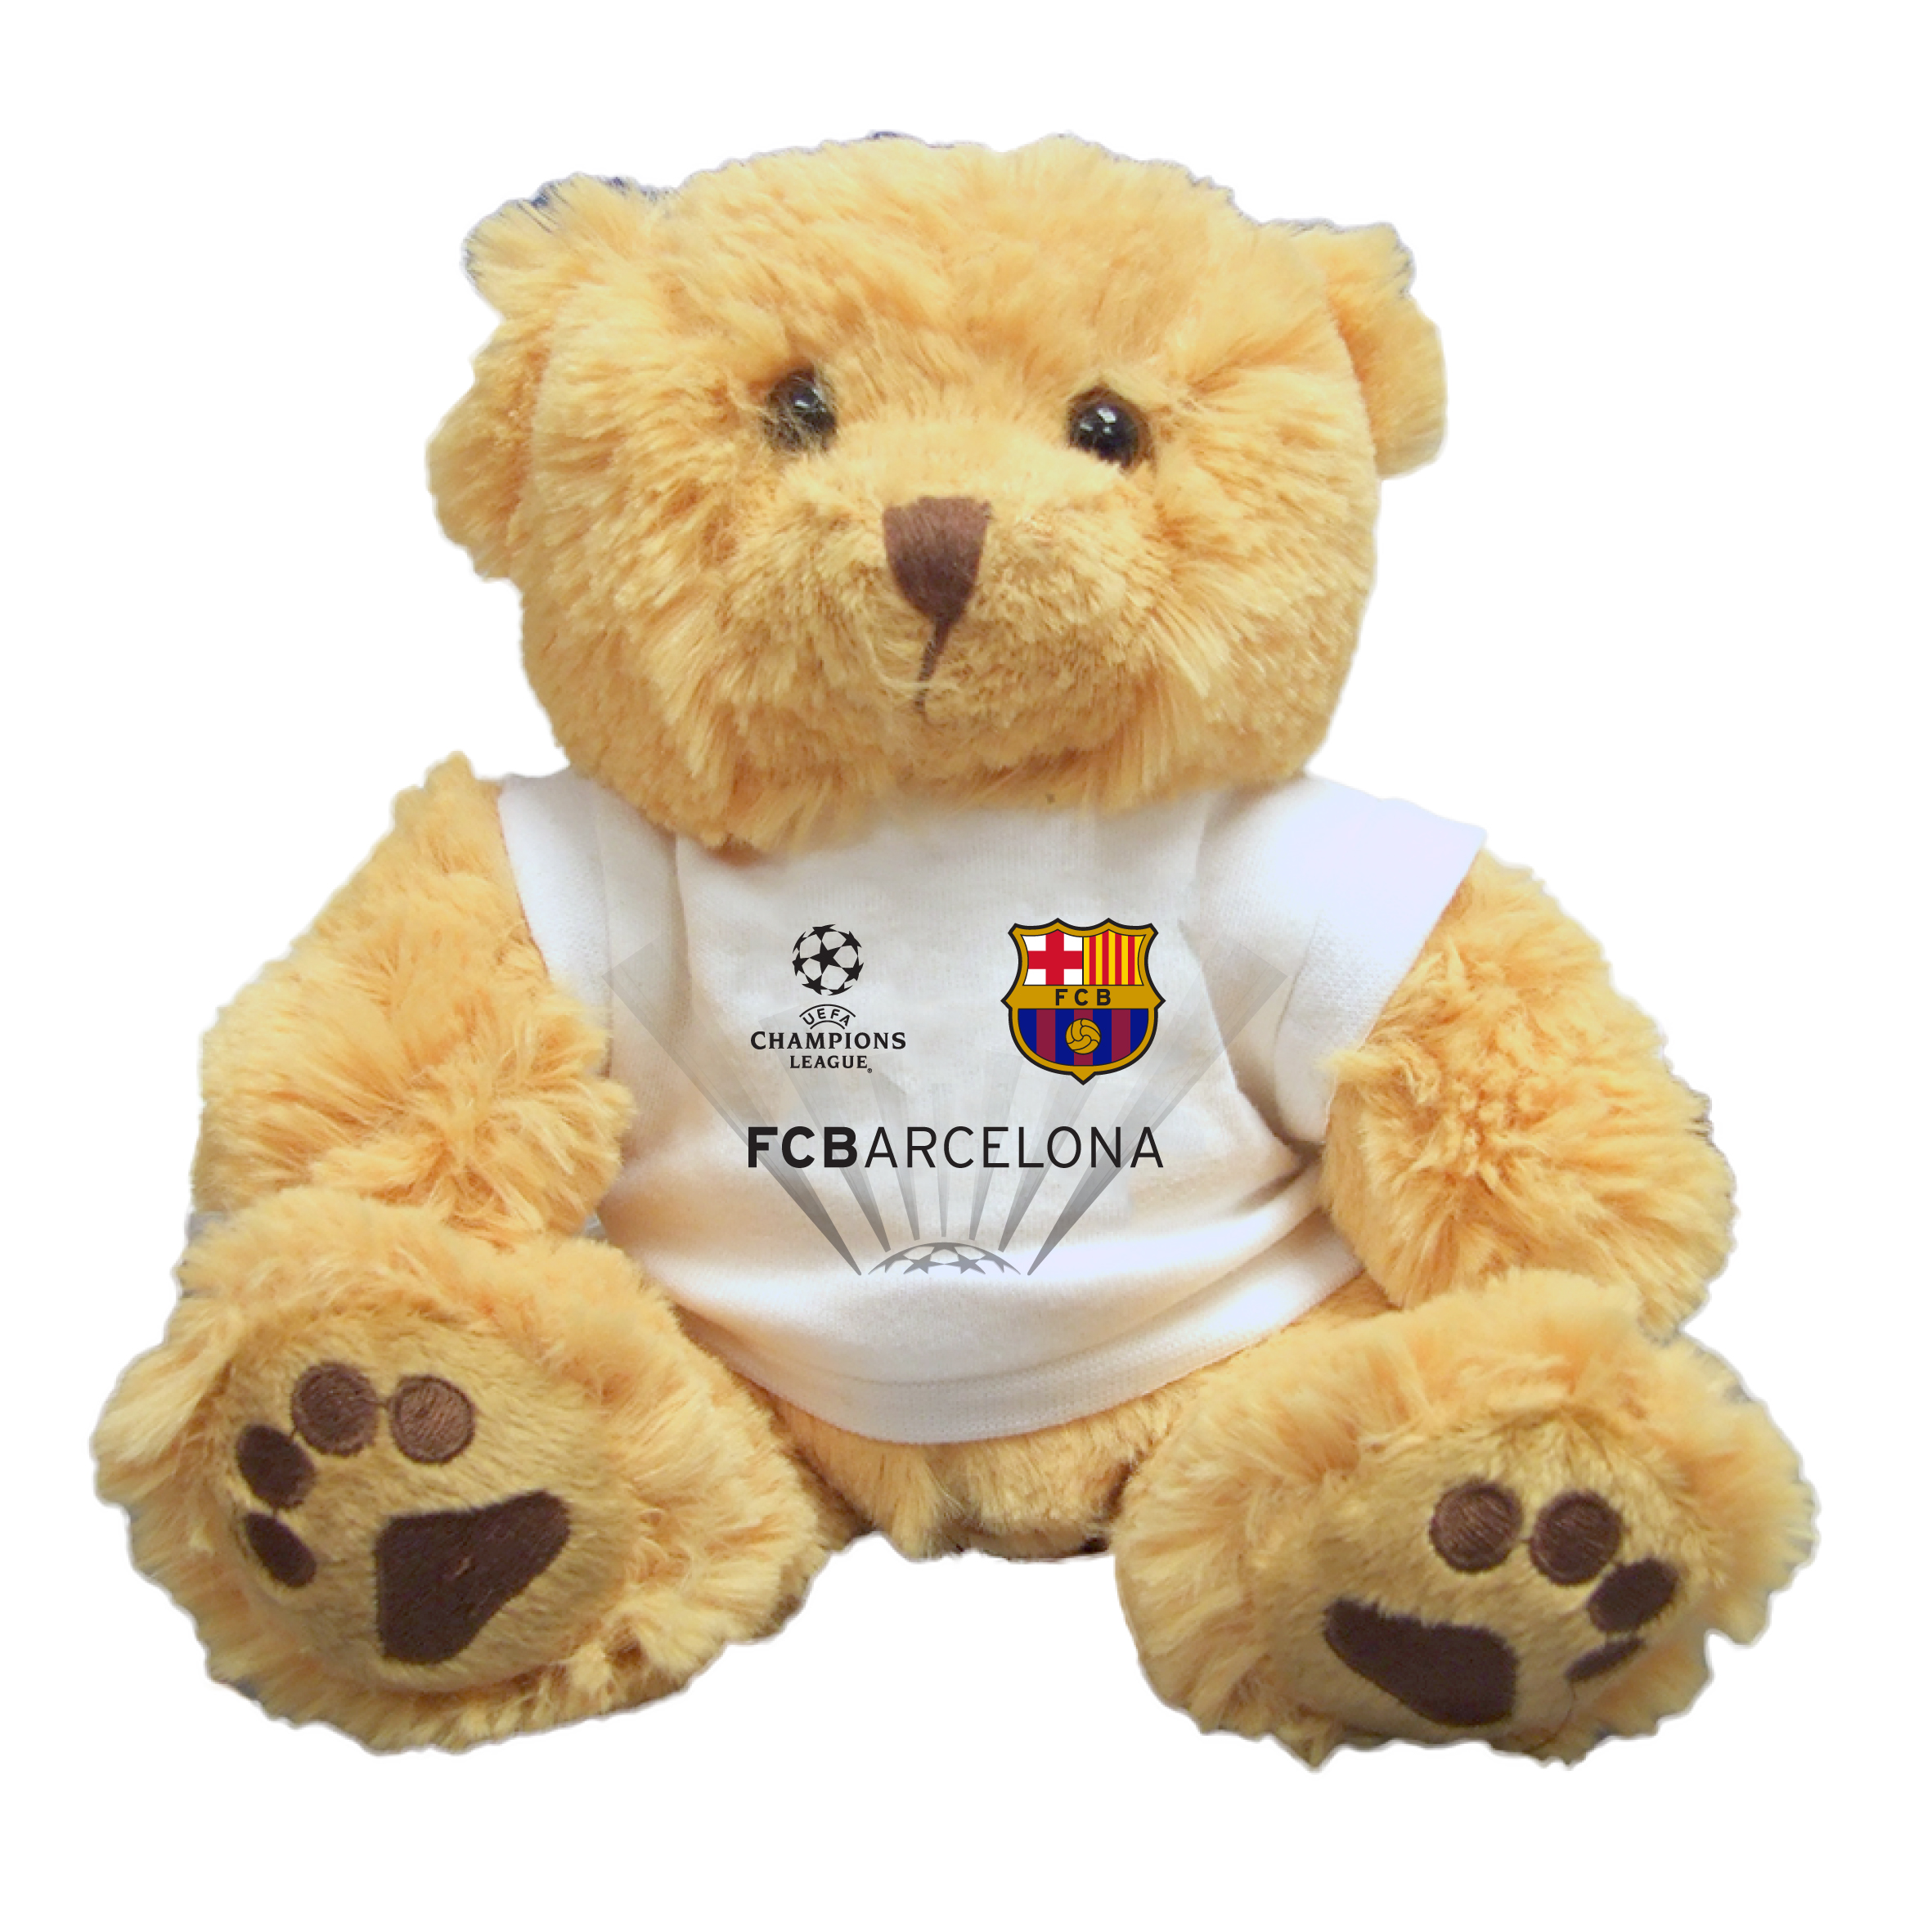 Barcelona UEFA Champions League Bear - 10 Inch